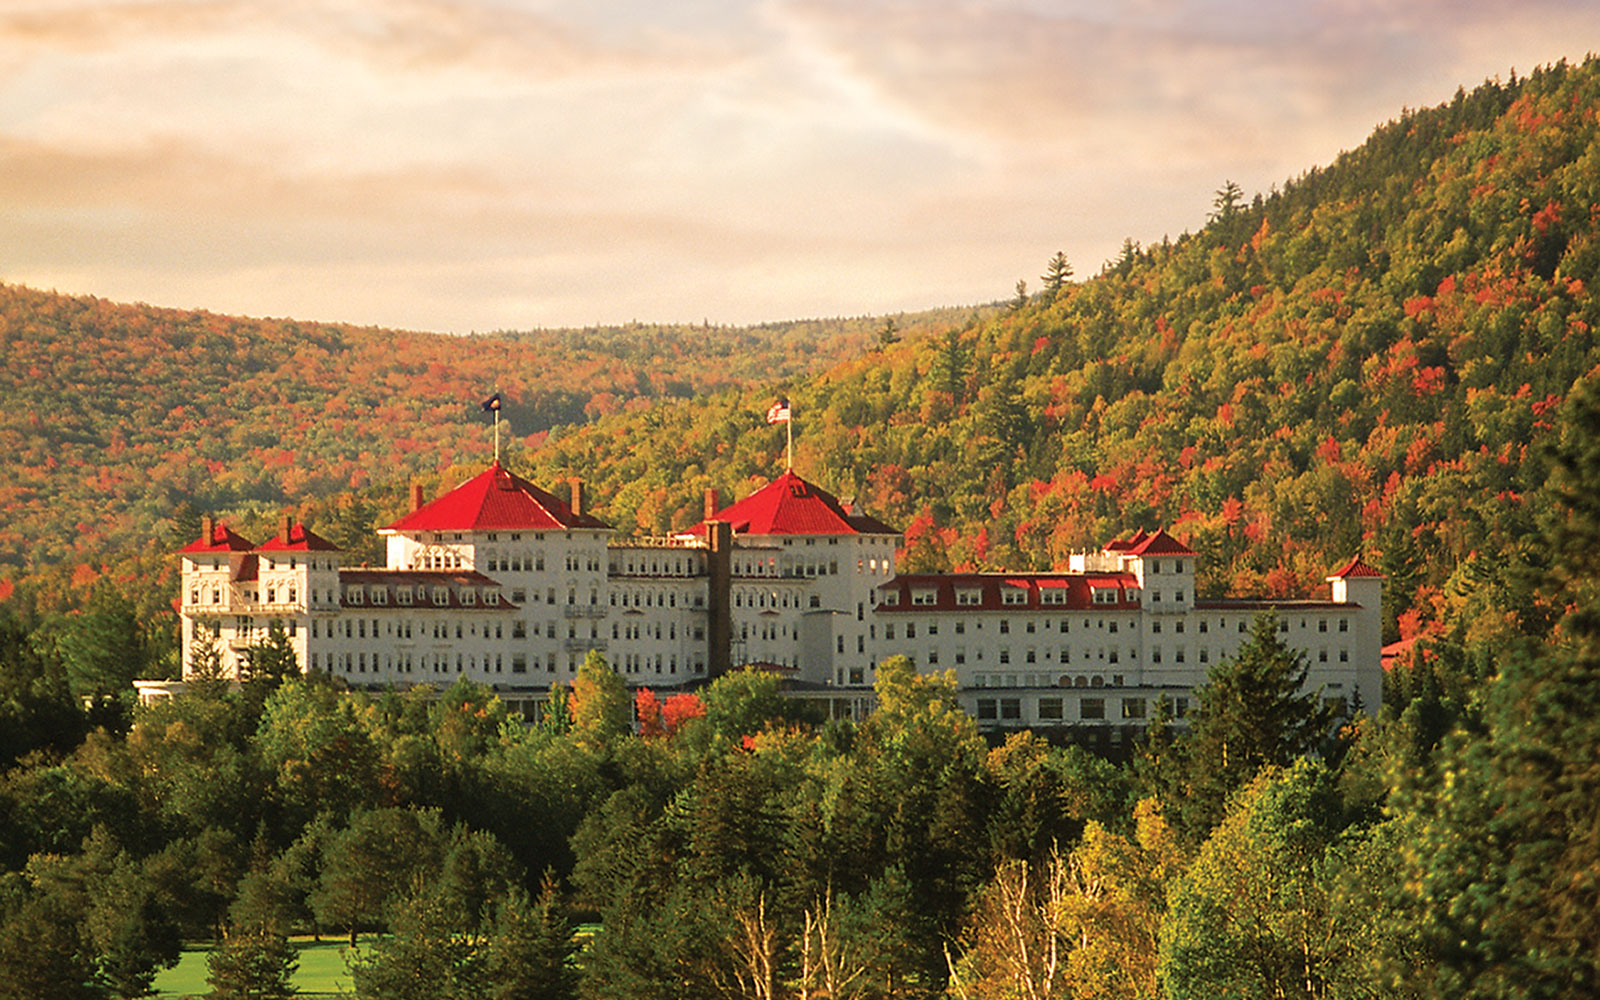 Omni mount washington hotel bretton woods nh